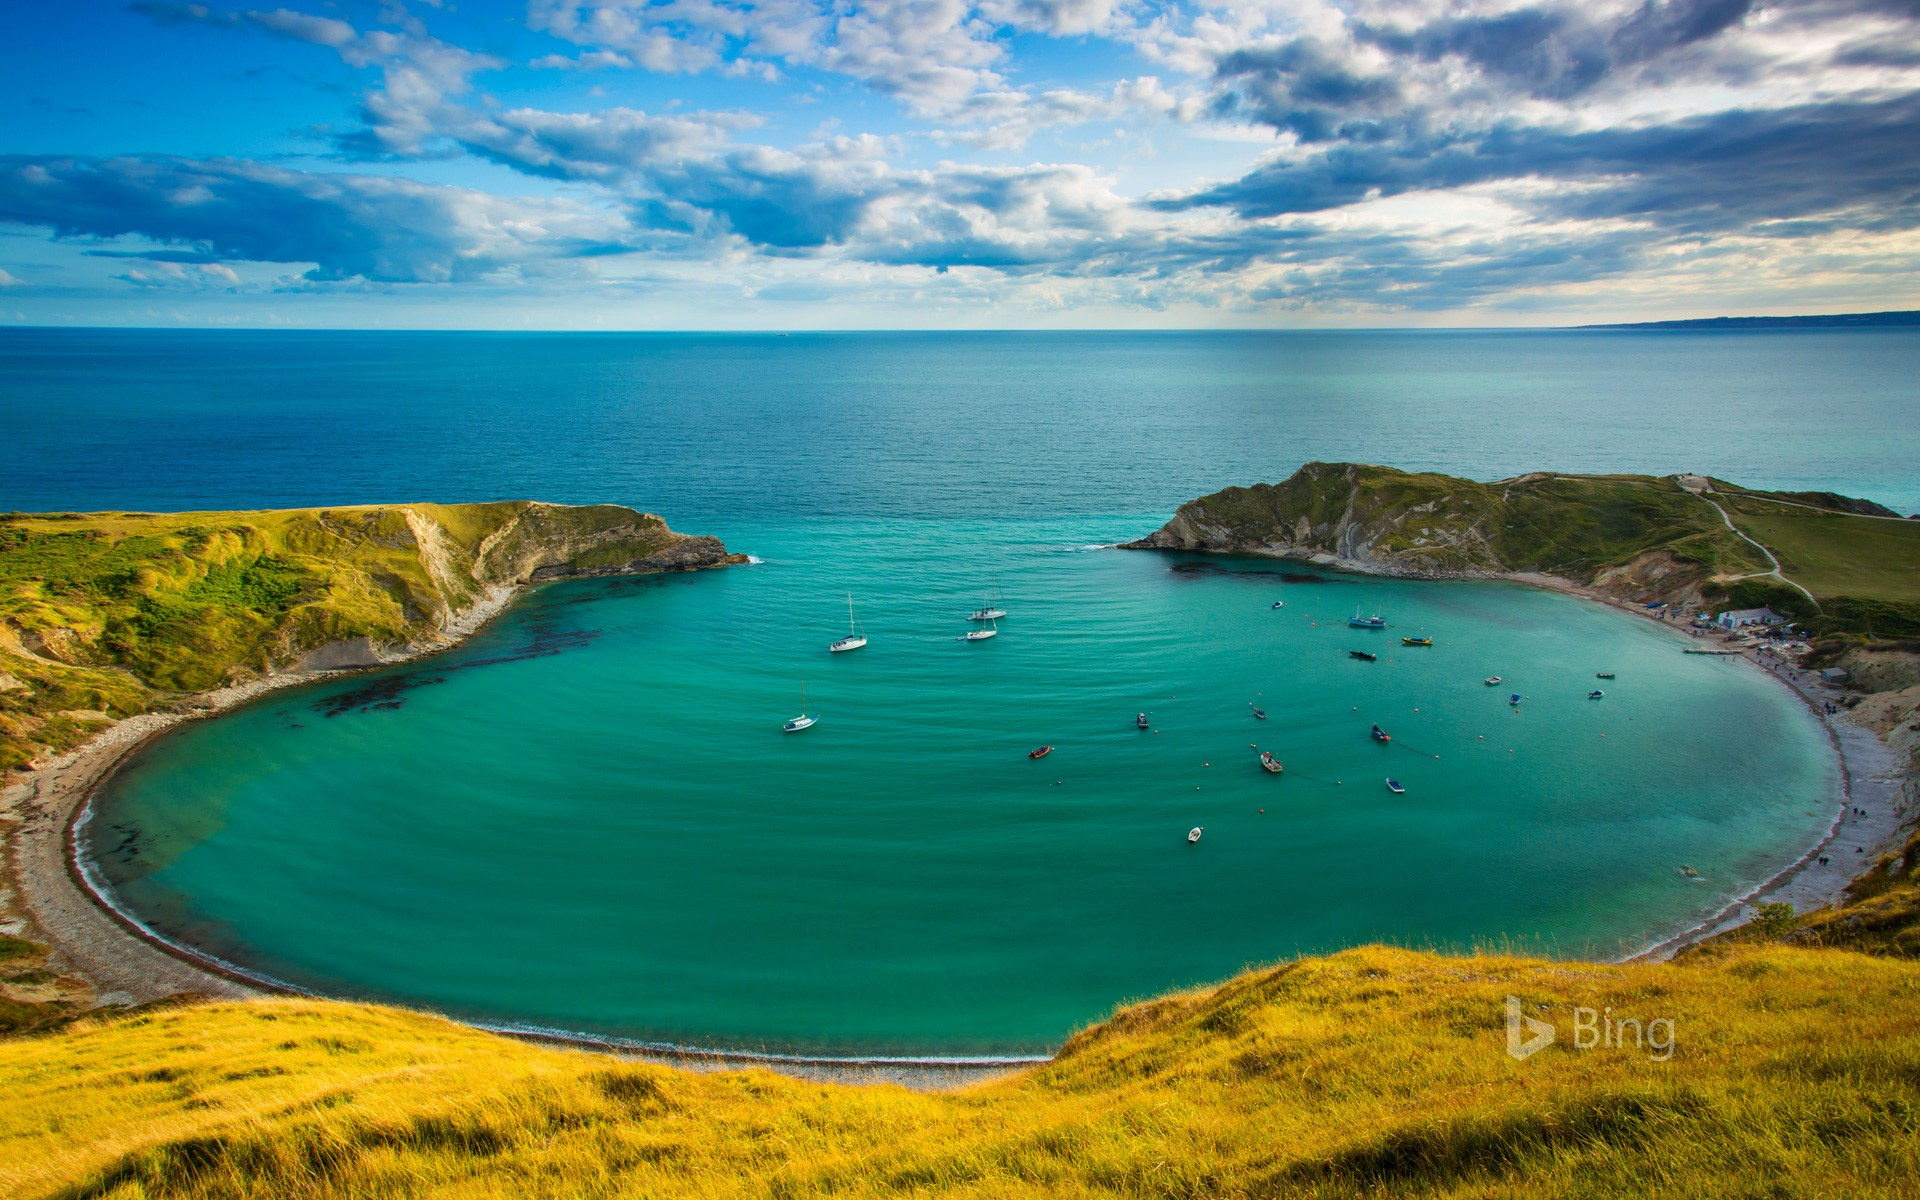 Lulworth Cove along the Jurassic Coast, Dorset, England